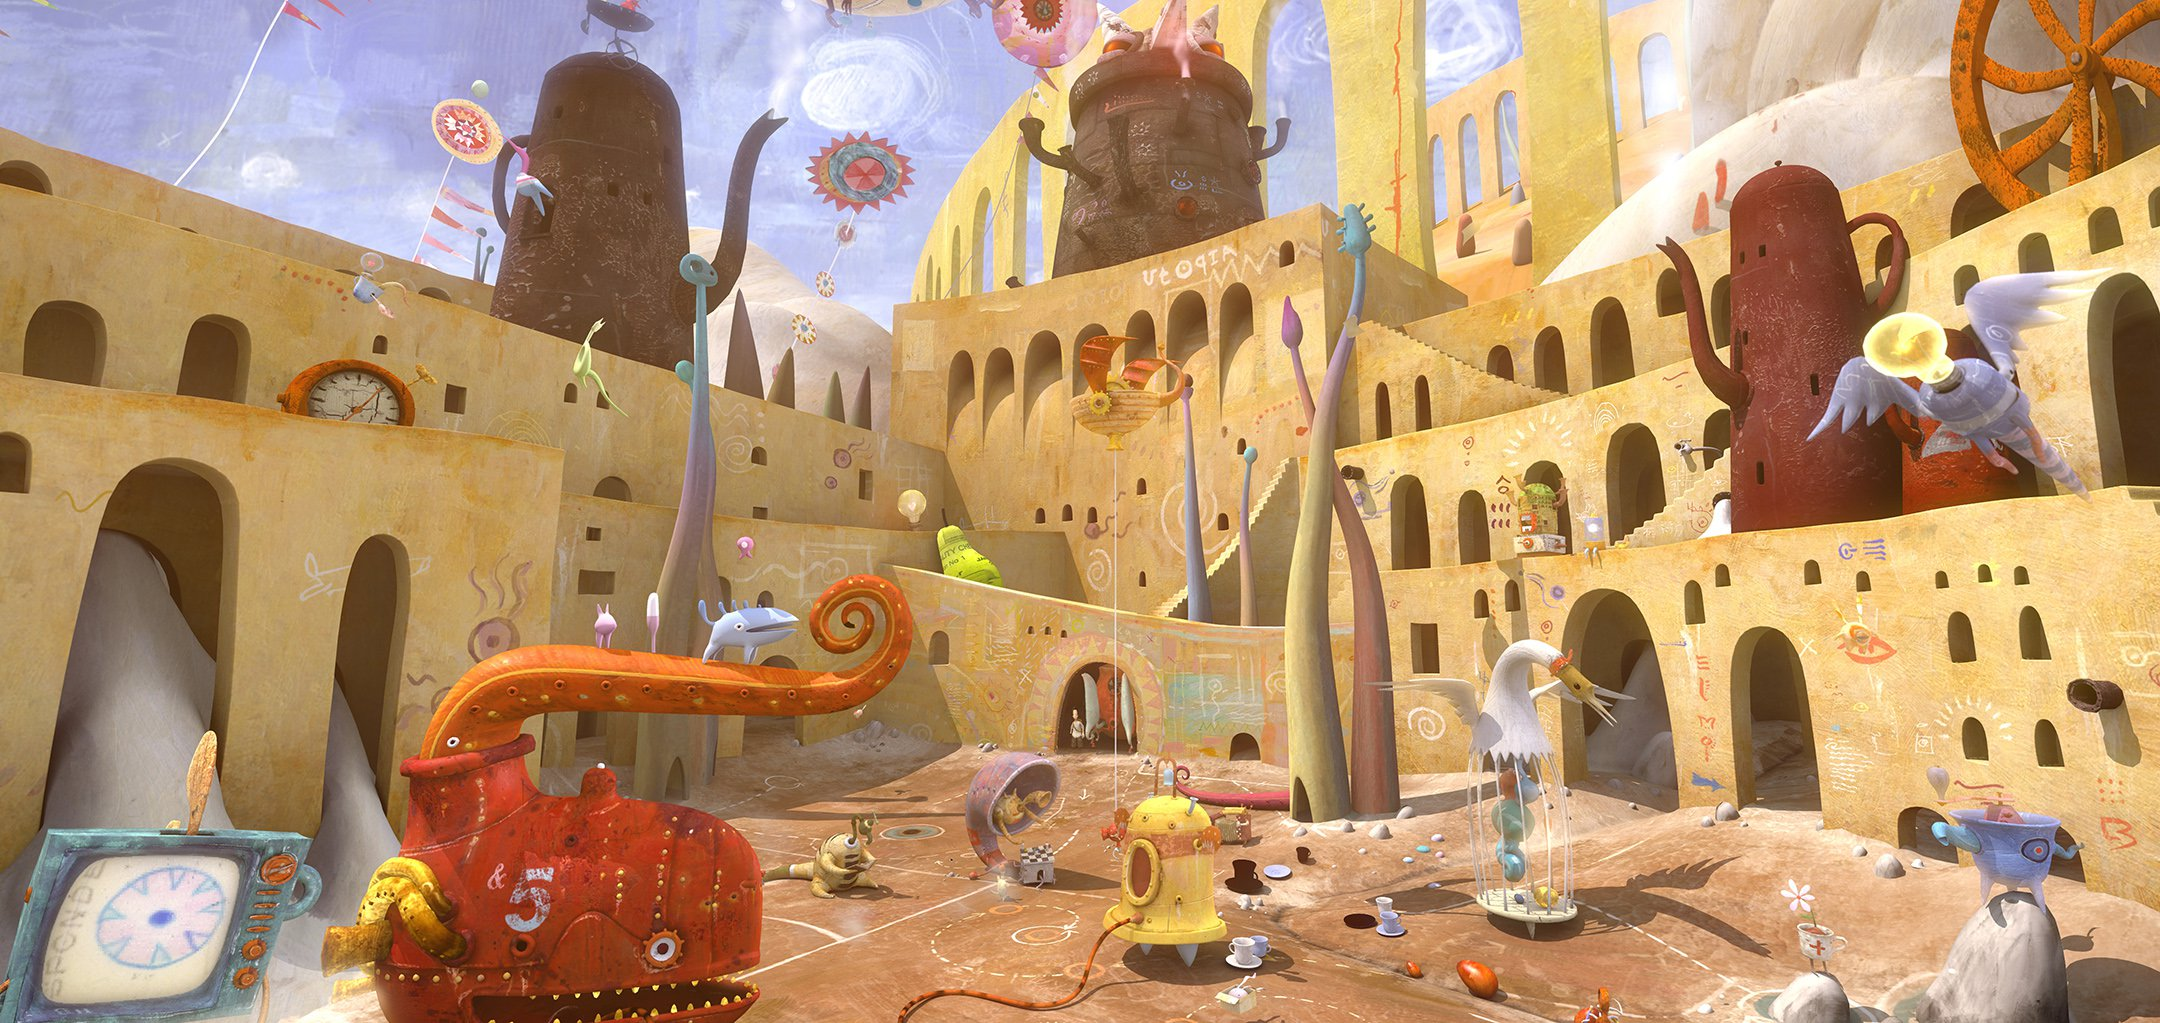 The world of Shaun Tan's The Lost Thing (2010)